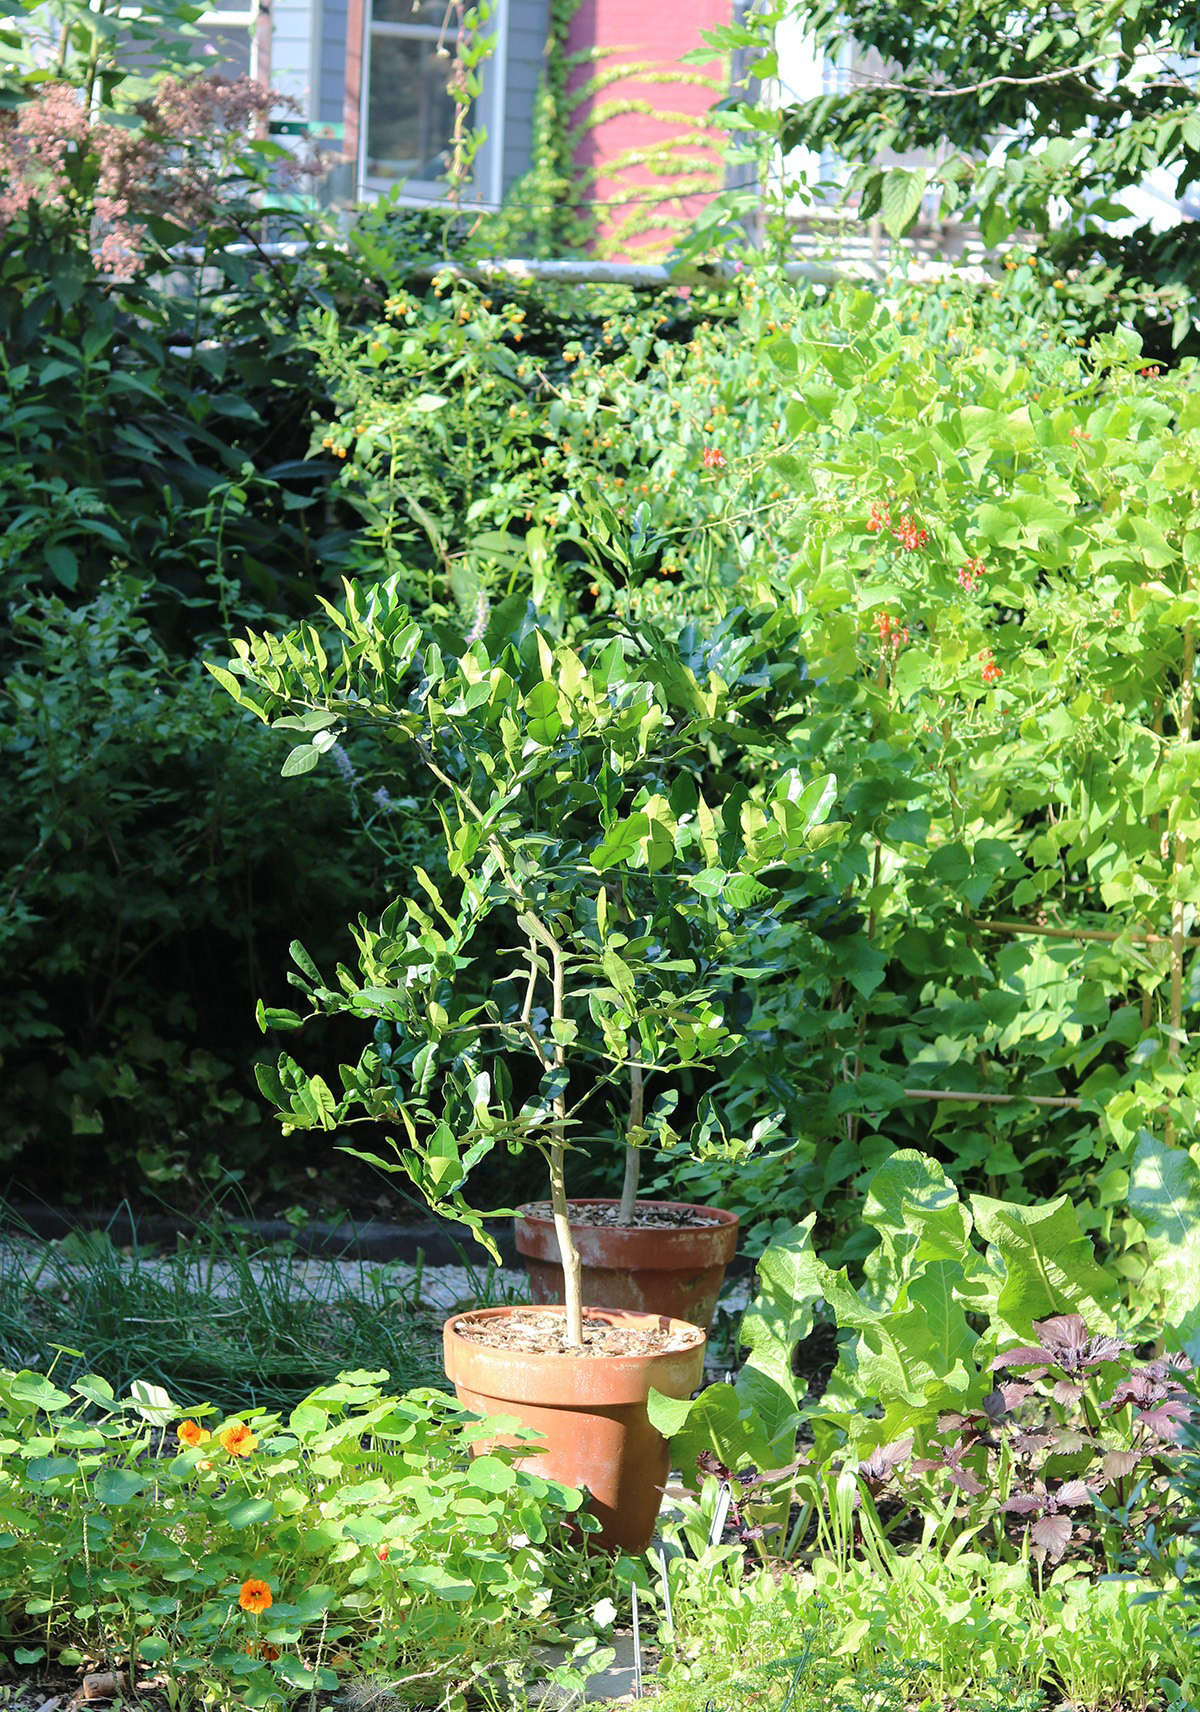 For the last several weeks my lime trees have been enjoying the sunlight in the sprawling, late-season vegetable plot, nudged by horseradish on one side and nasturtiums on the other.